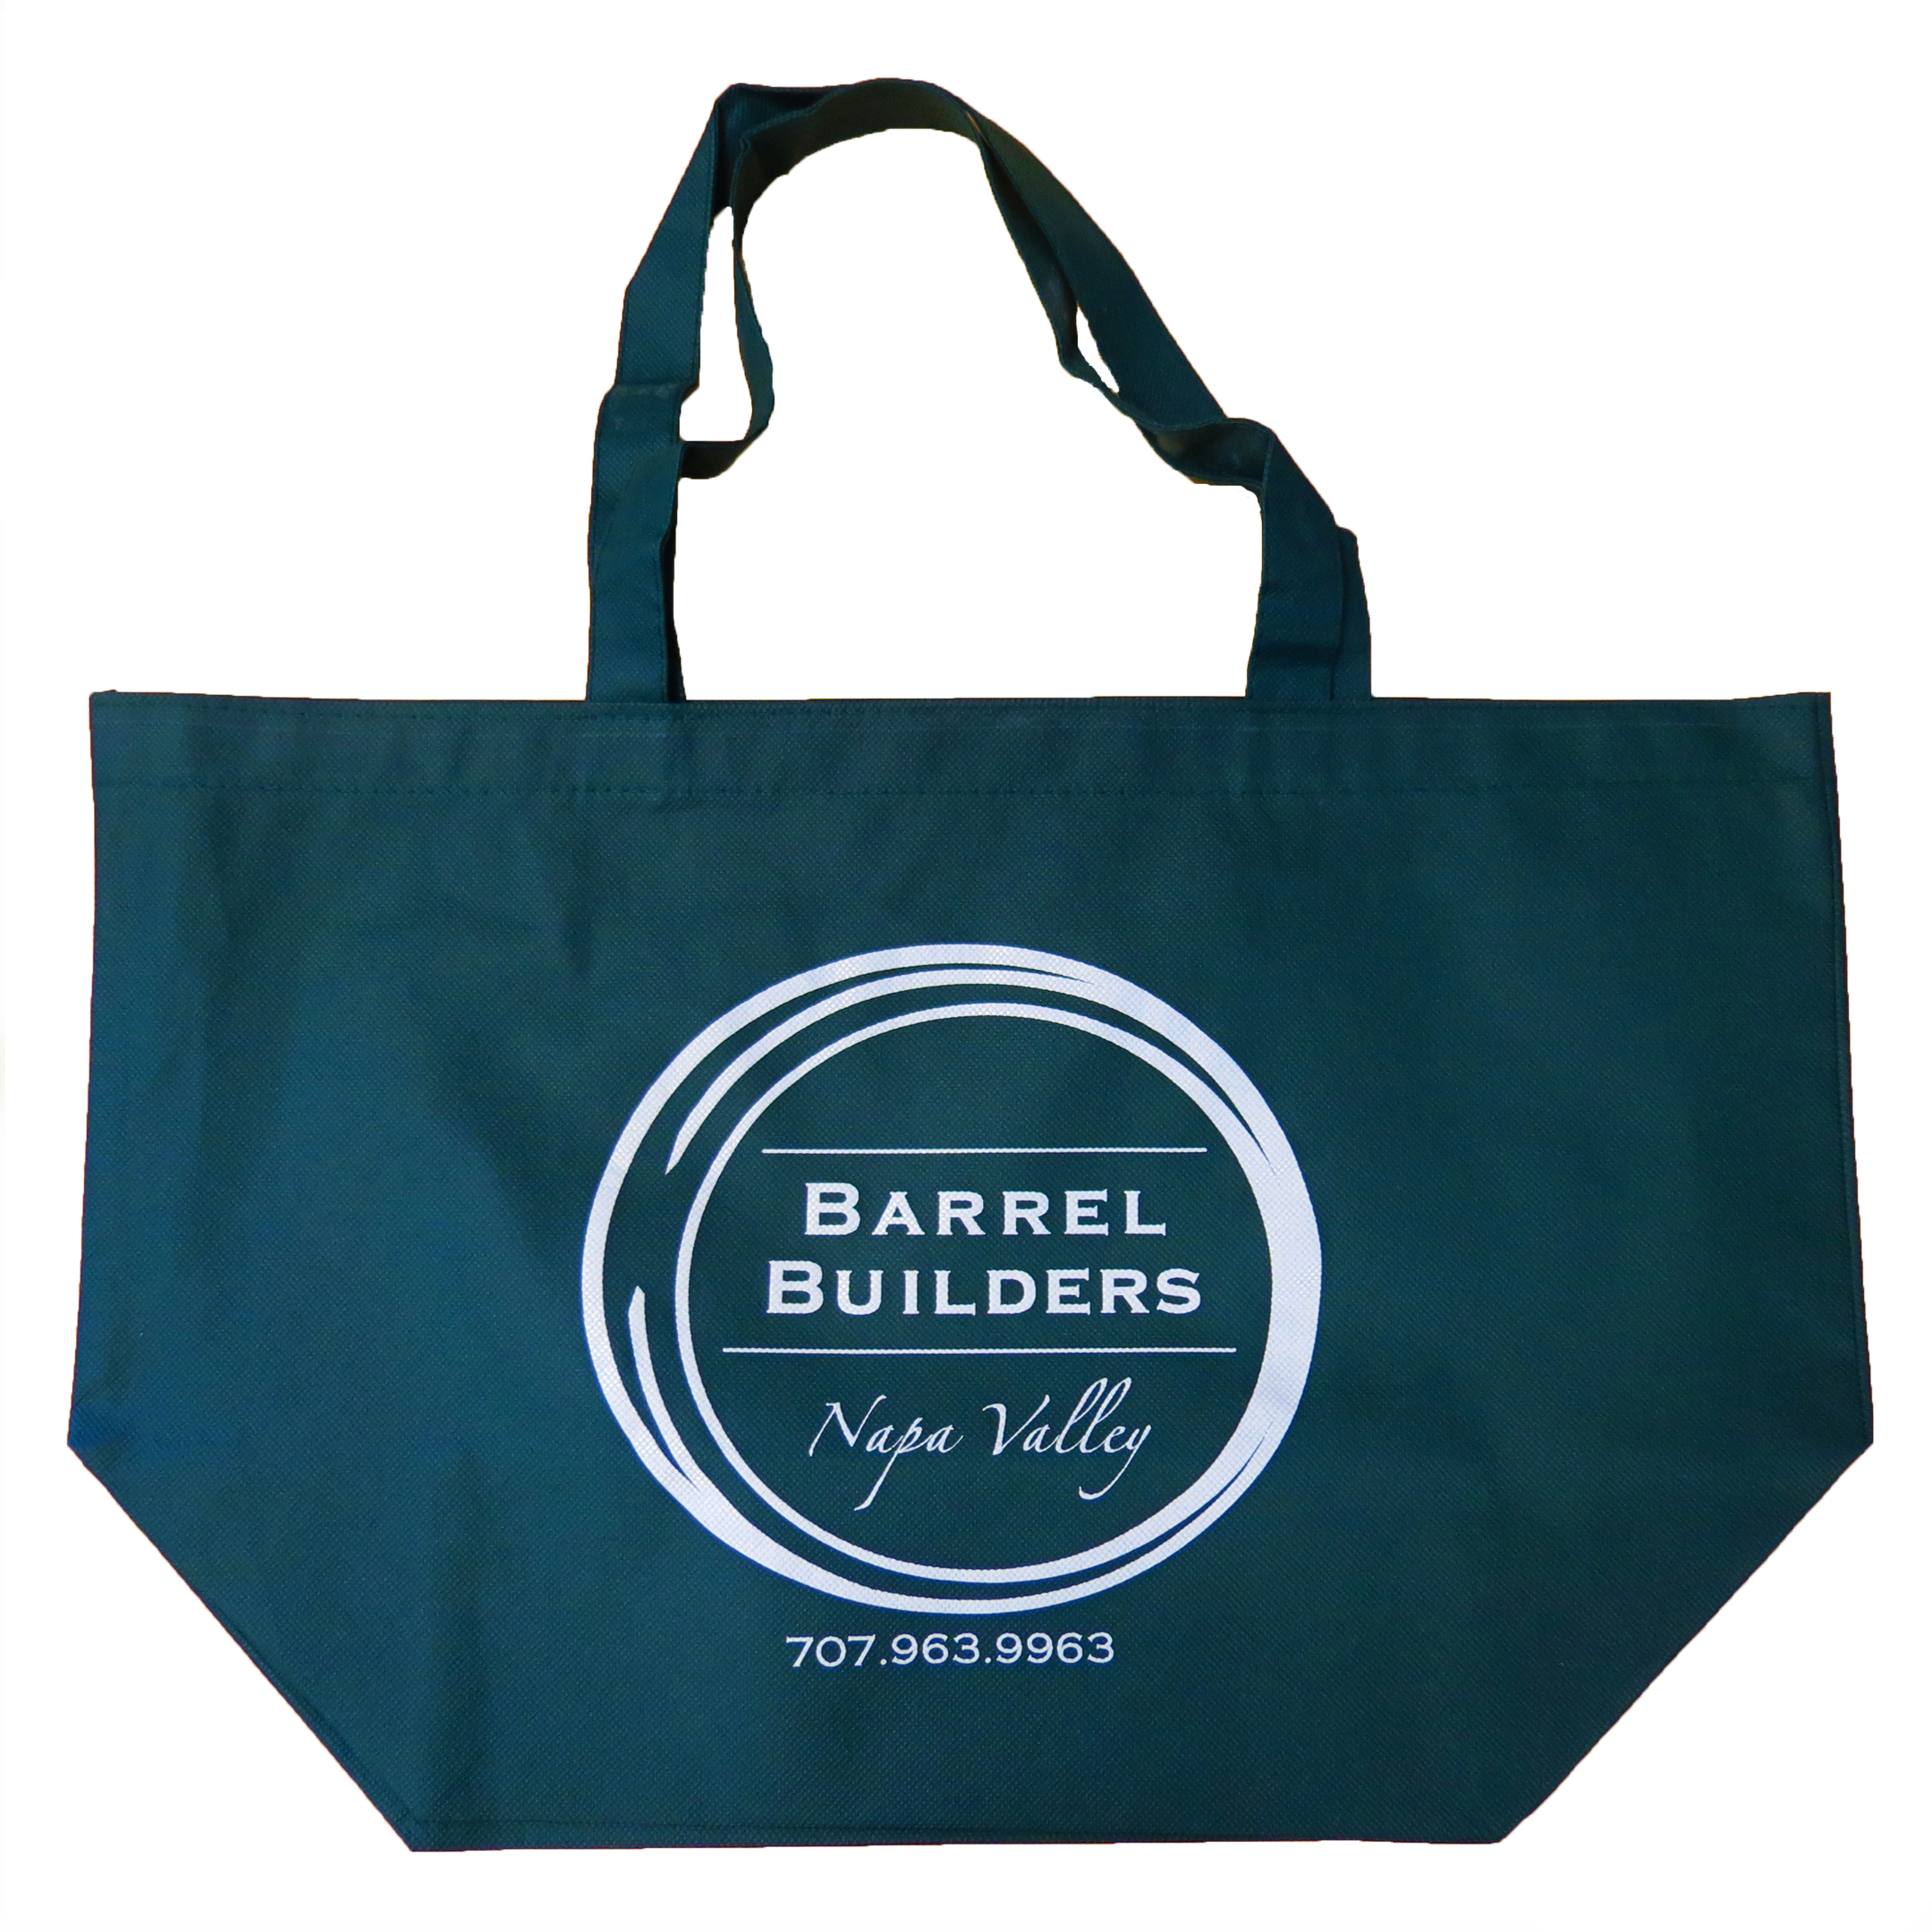 Barrel Builders Tote Bag